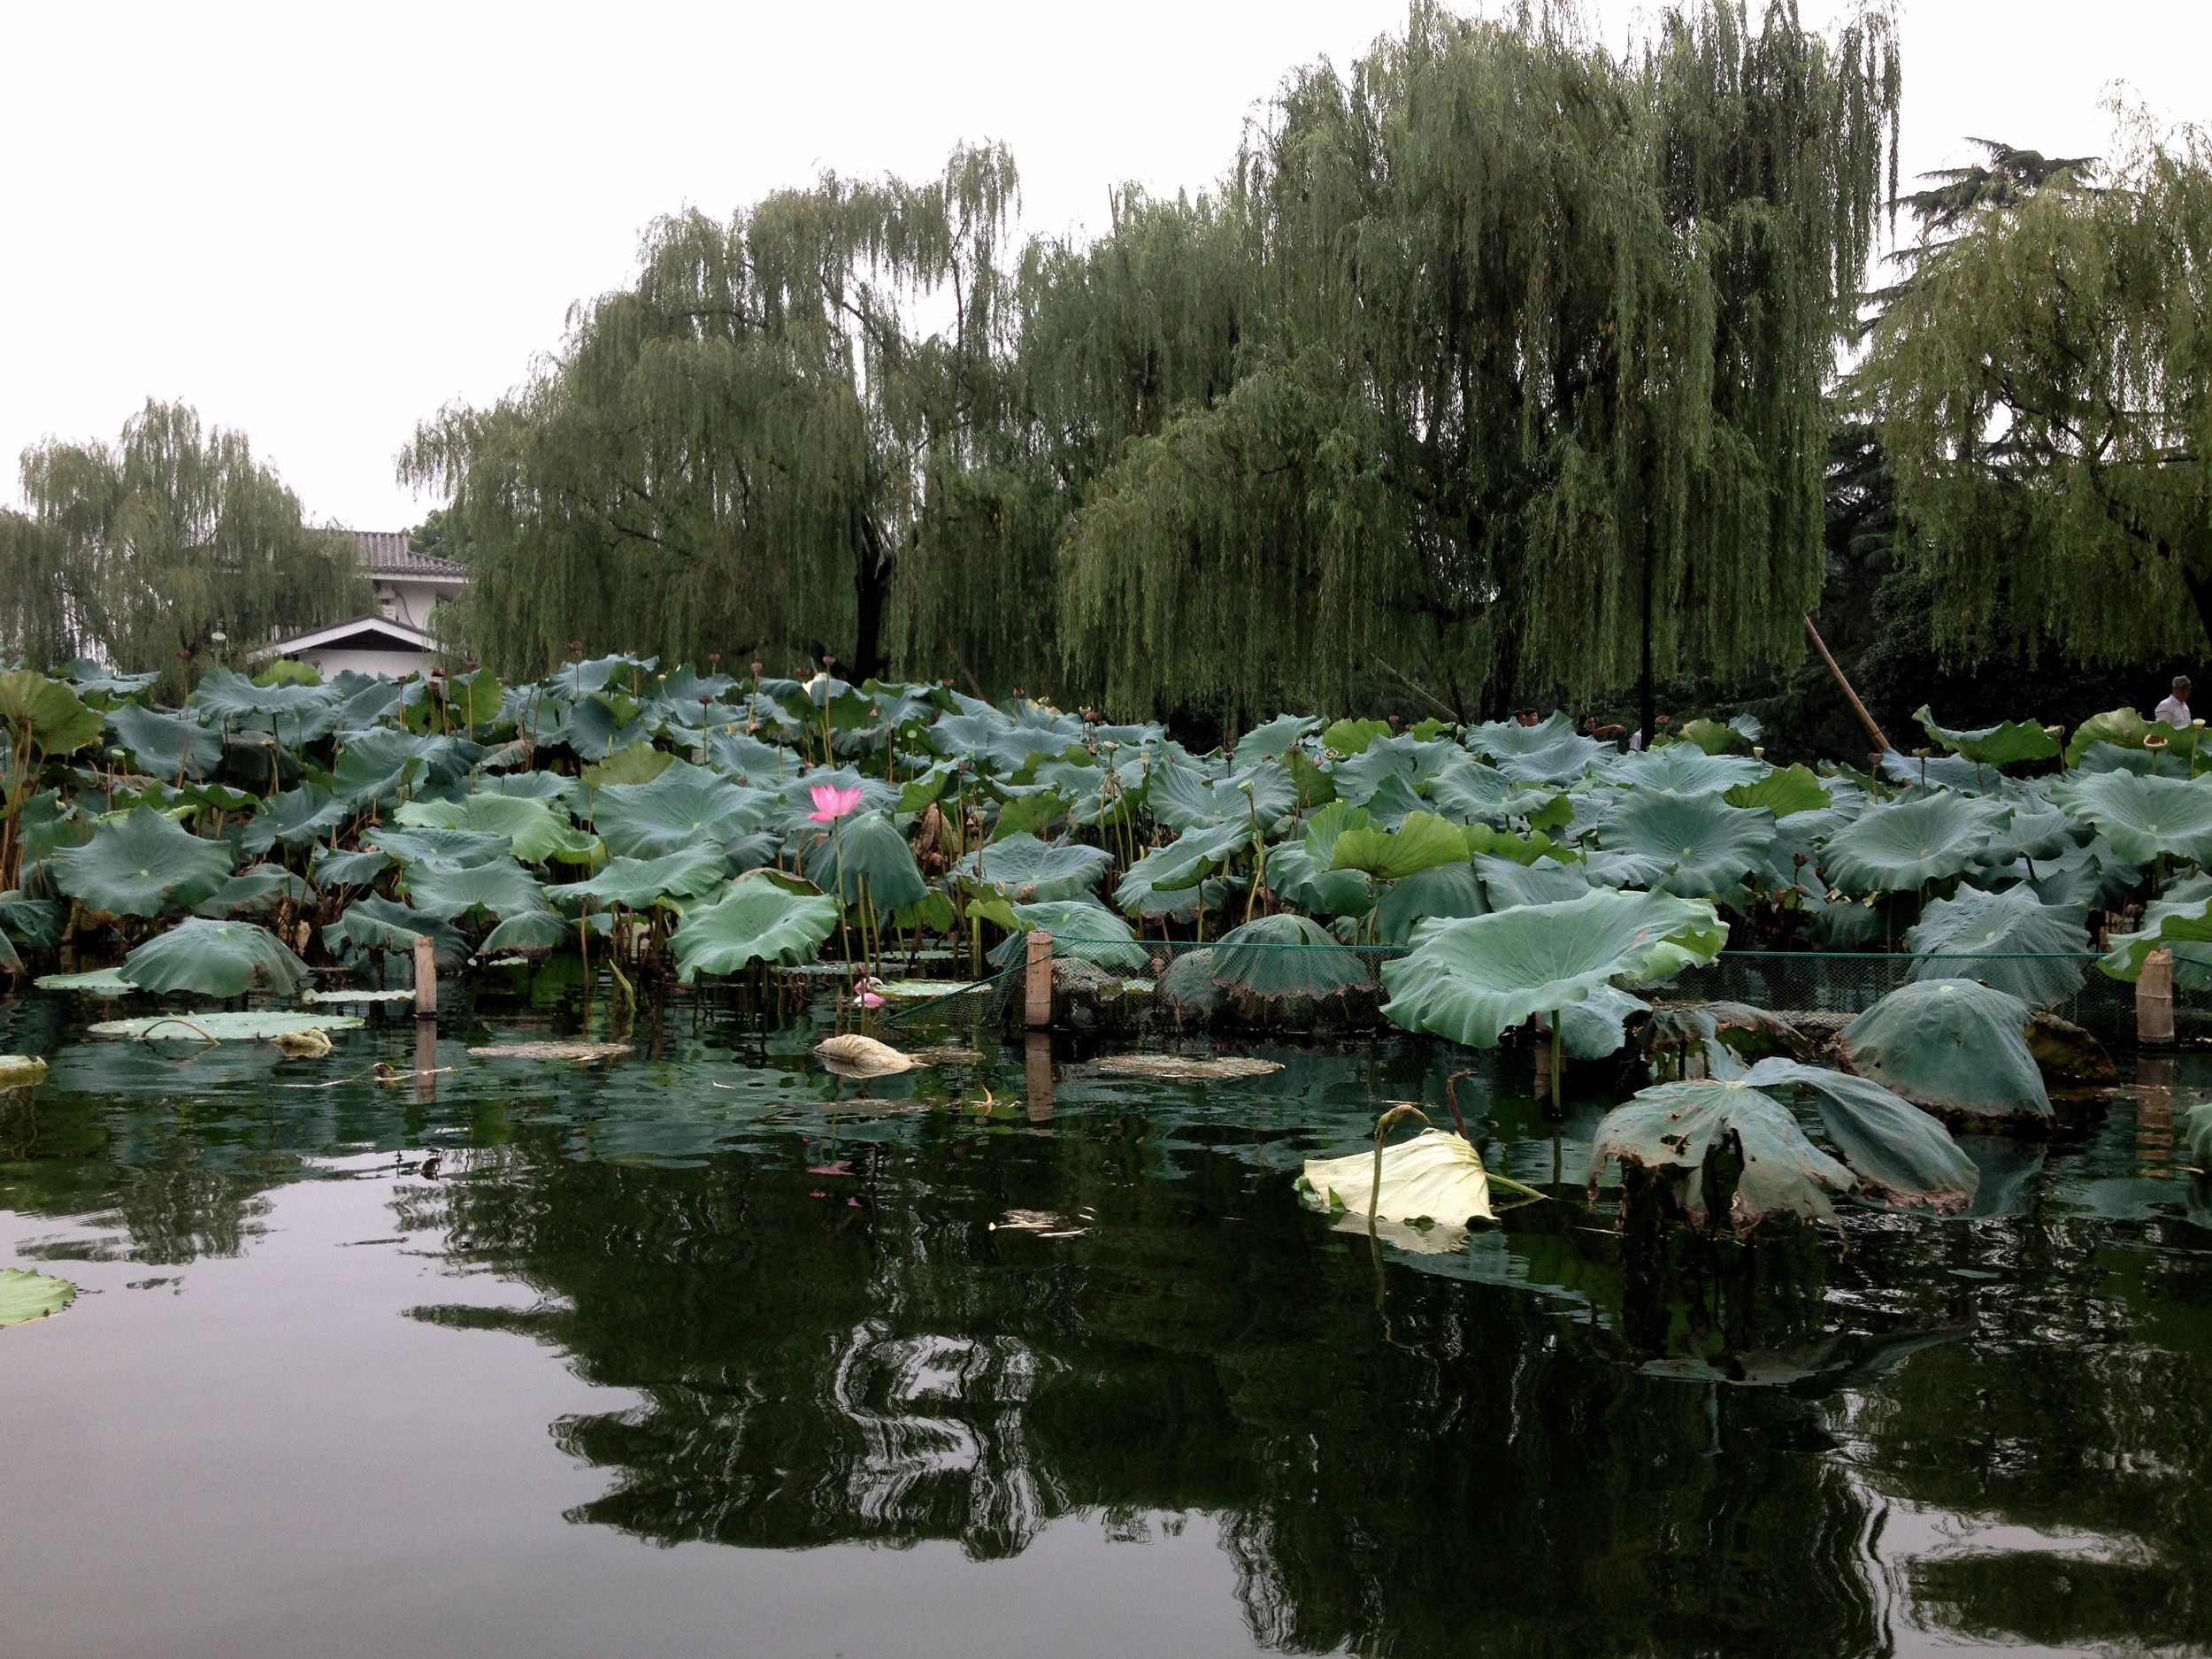 Water lily's, not in their best season (July)